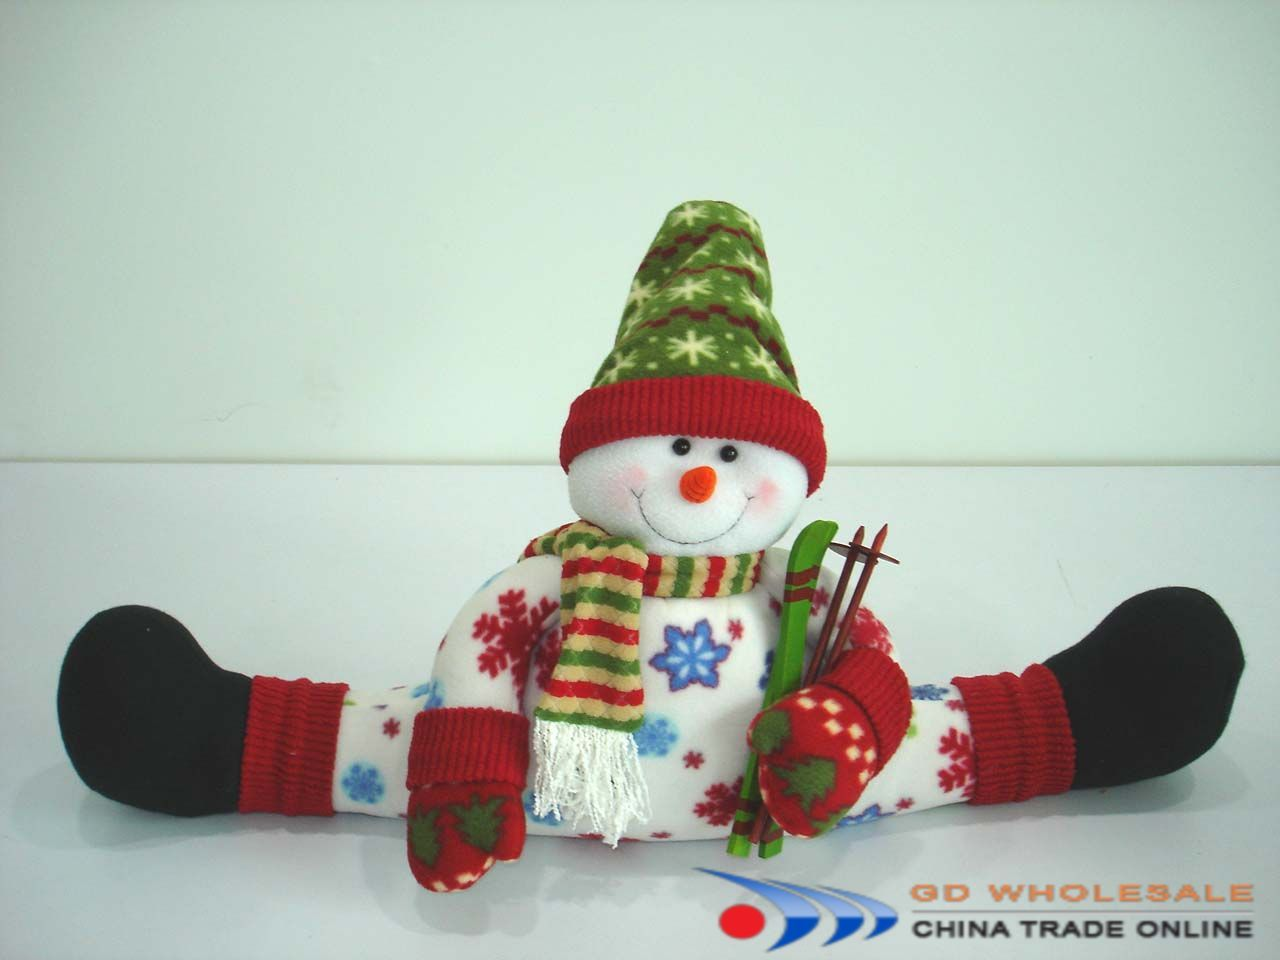 Snowman Draft Stopper Keep The Cold From Seeping Under